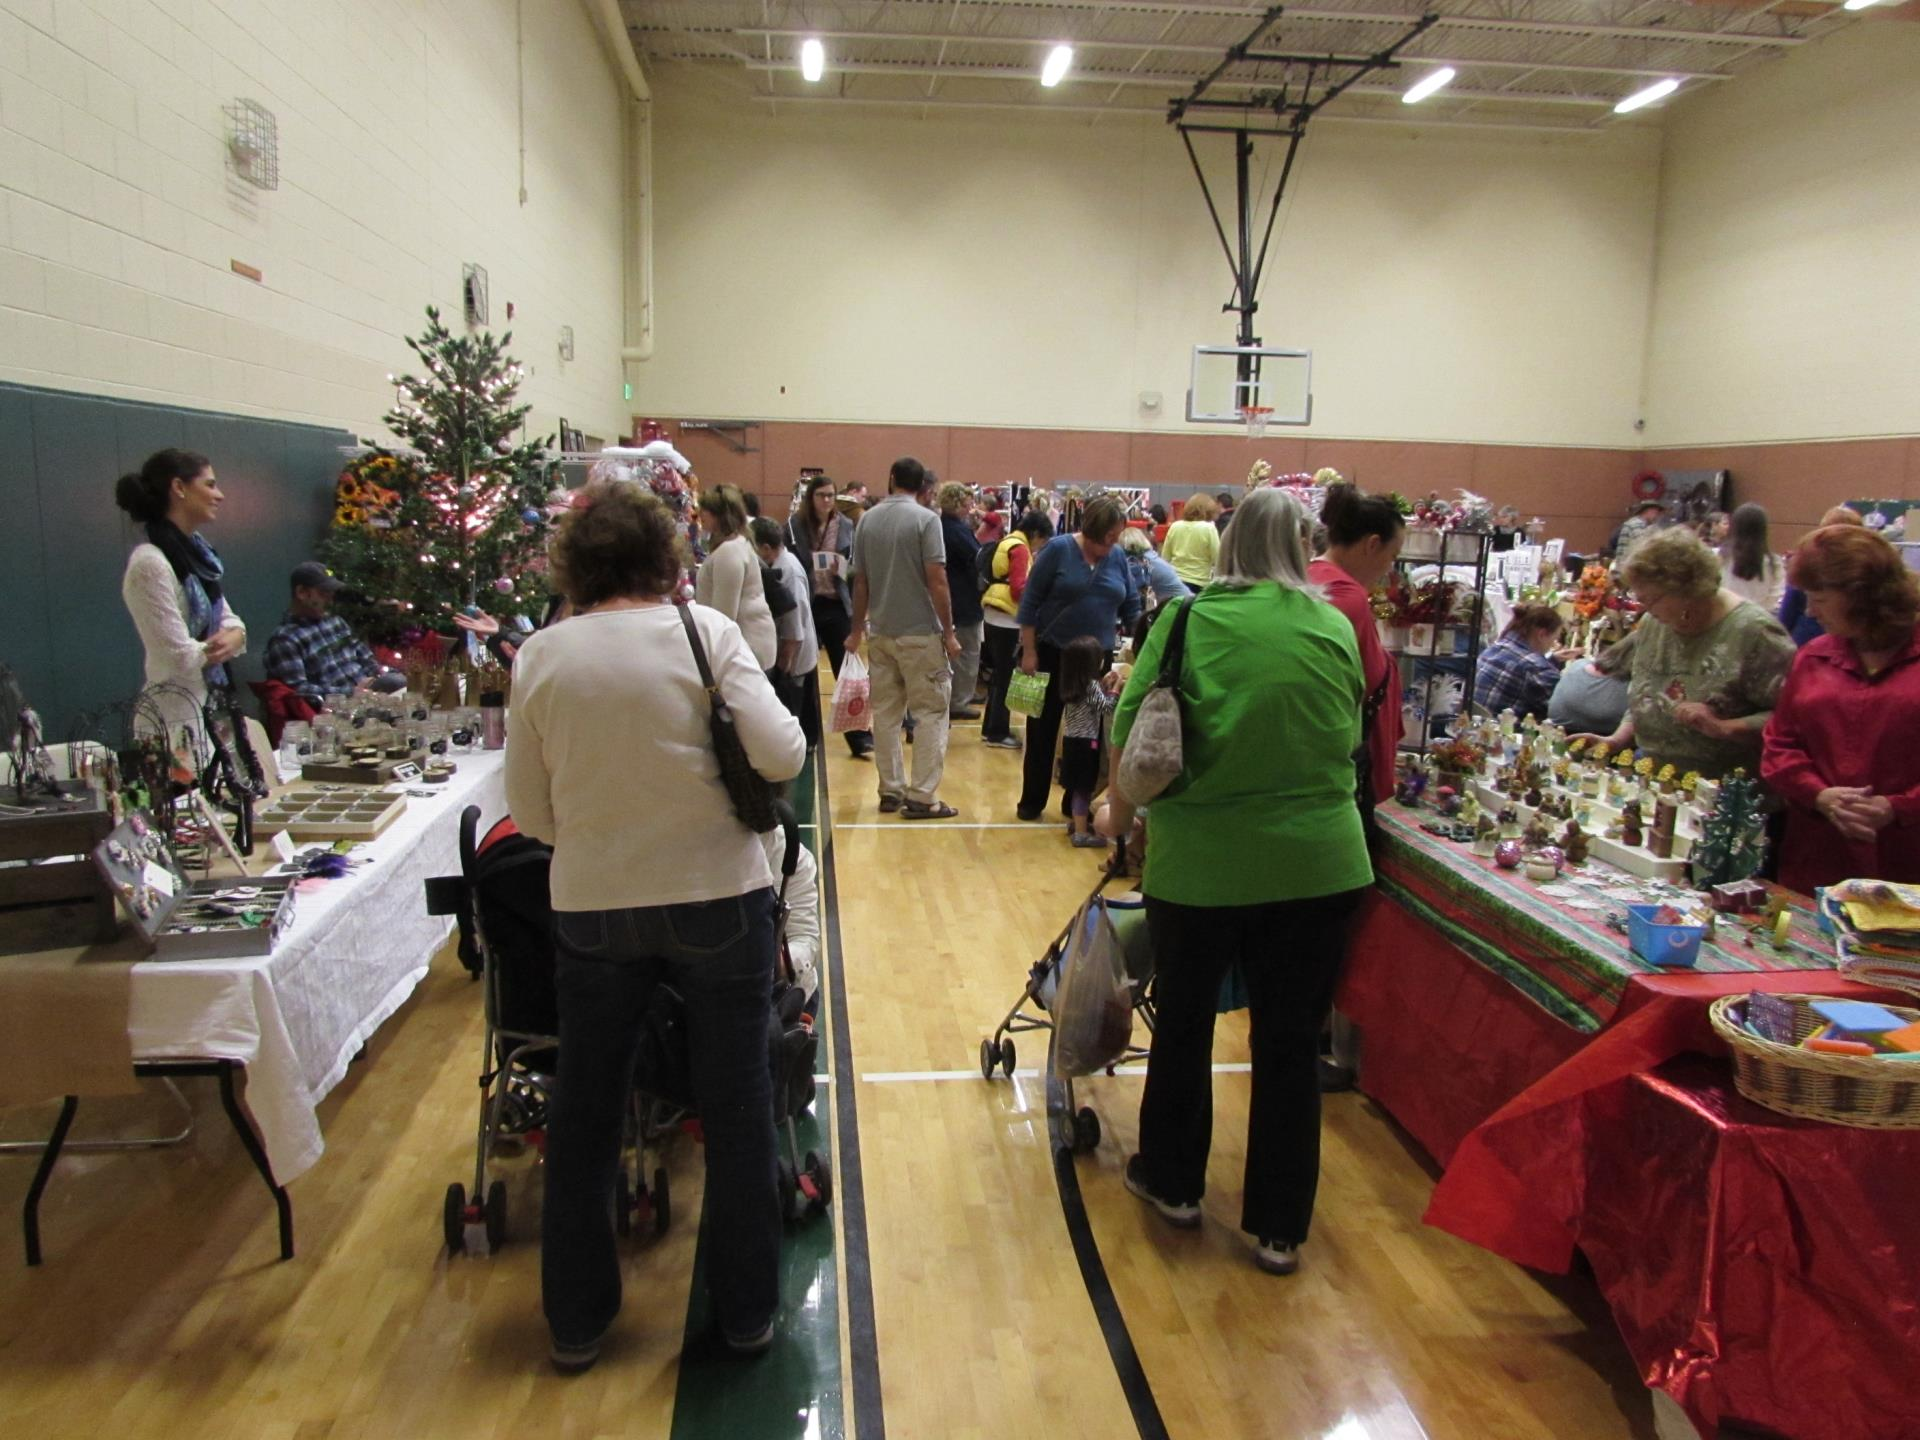 Holiday Shoppers at the Malley Holiday Bazaar